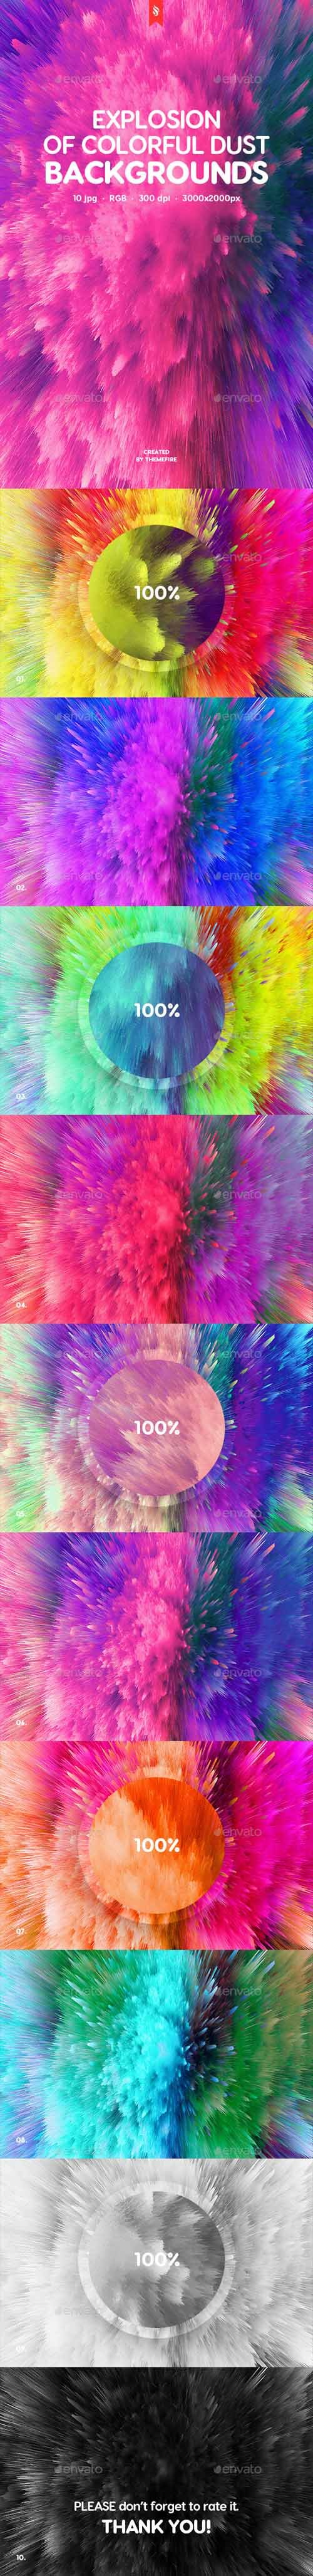 Explosion of Colorful Dust Backgrounds 20234705